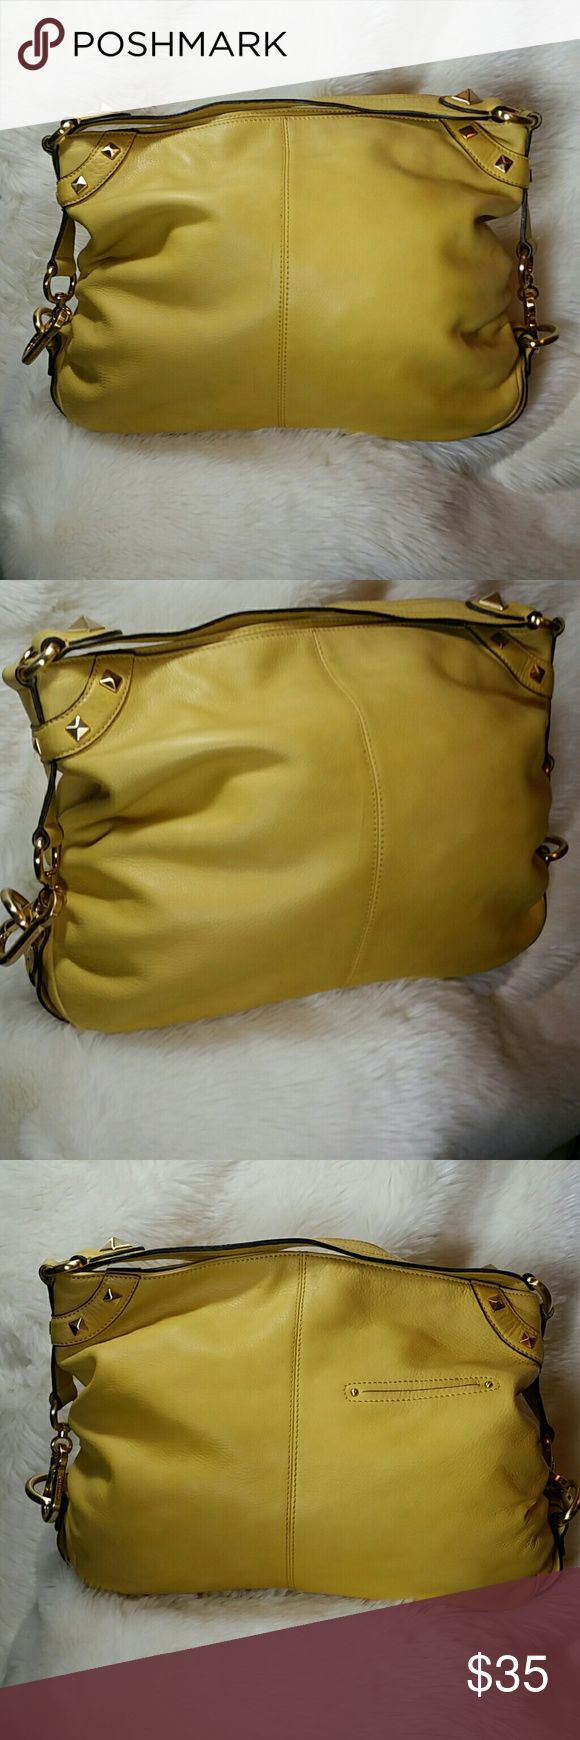 "B Makowsky Leather Yellow Hobo Handbag B Makowsky Leather Yellow Hobo Handbag. Buttery soft leather. Gold pyramid studs detailing. Although the bag is structurally sound with straps in great condition and a spotless interior, there are a few faded/dirt spots and marks on the handbag as well as a deep scratch within the leather on the front. Please see the first photo, the scratch is to the left of the center seam. 100% genuine leather. Large and slouchy. Zip top closure.  Measurements  16.5""…"